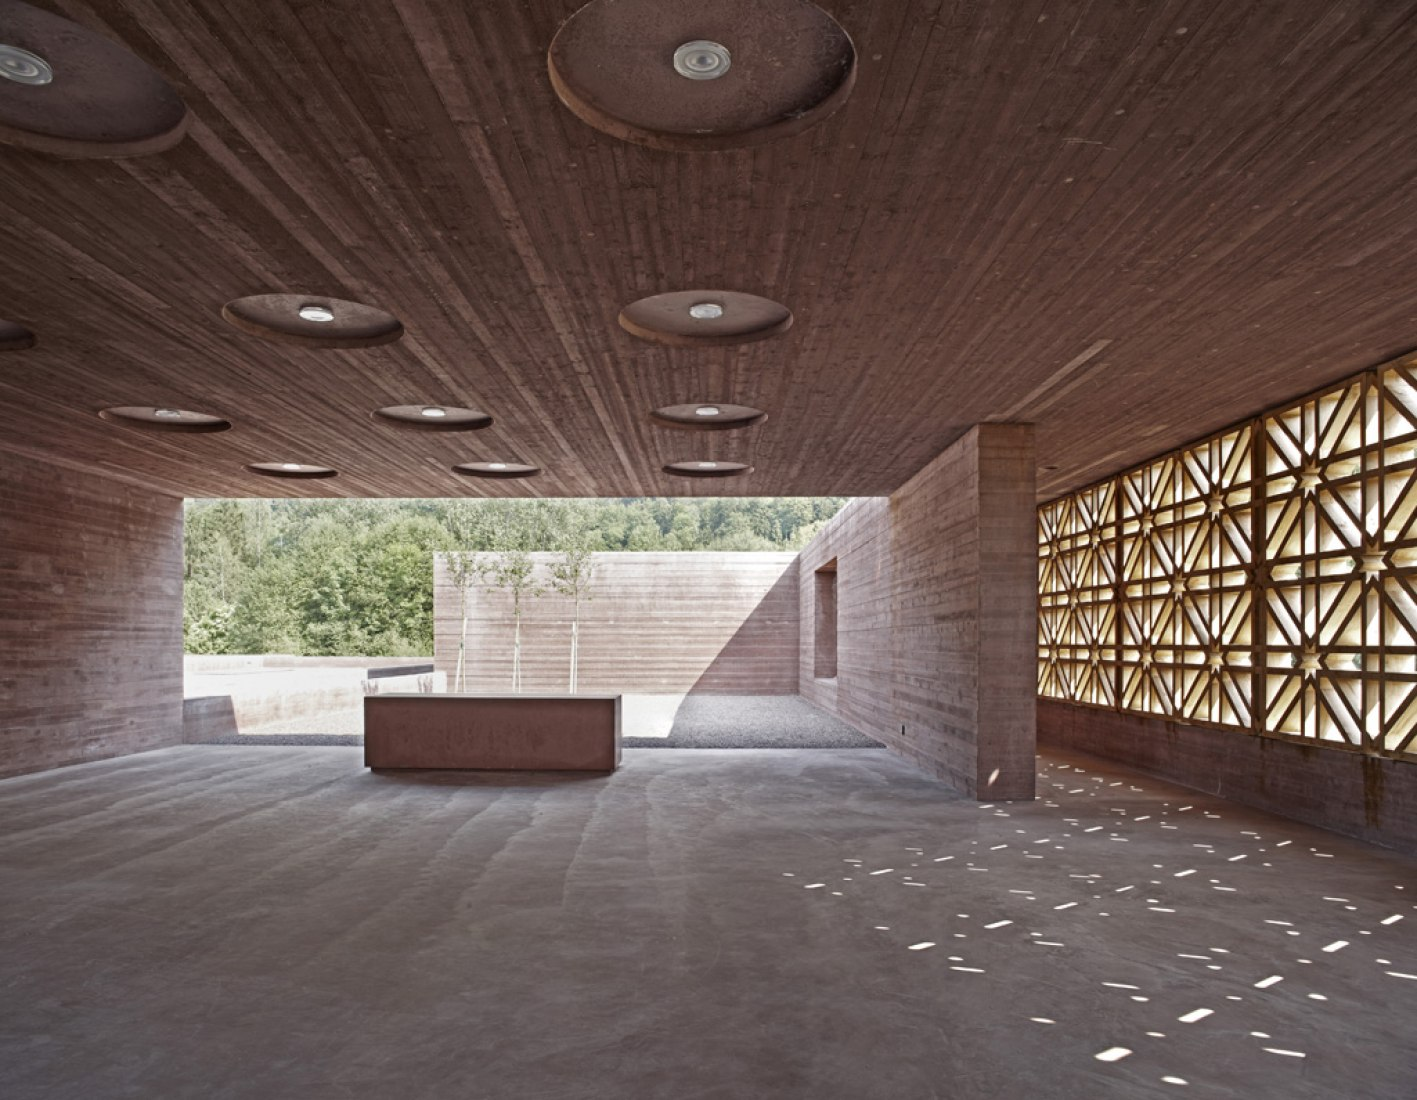 Congregation space. Islamic Cemetery. Location: Altach, Austria (Europe). Architect: Bernado Bader Architects, Dombirn, Austria. Completed: 2011. Design: 2008-2011. Site size: Ground floor area: 4'235 m² - Total site area: 8'415 m². Photograph © AKAA / Adolf Bereuter.